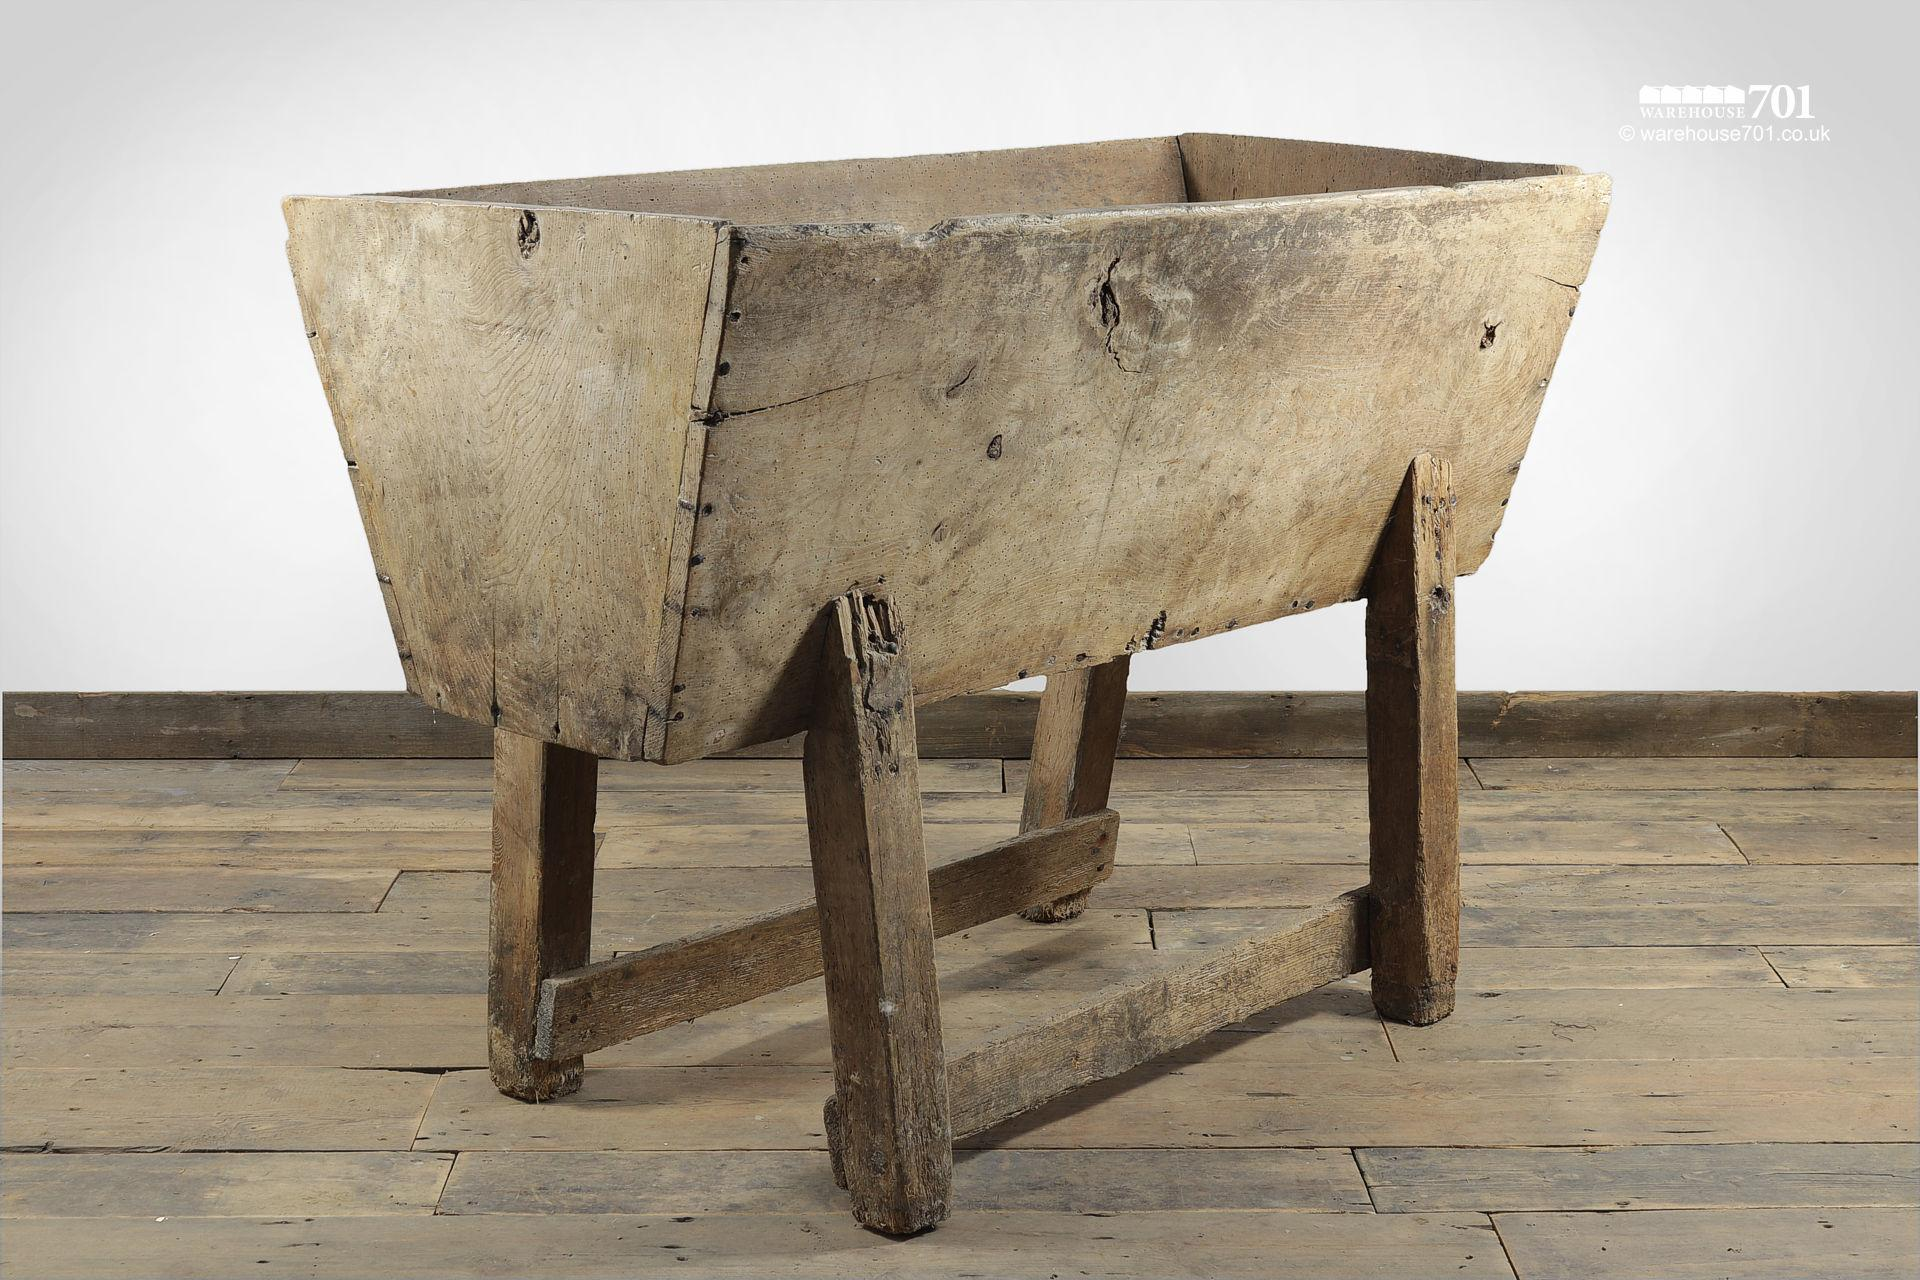 Old Traditional Hereford Elm Feeding Trough or Manger #7